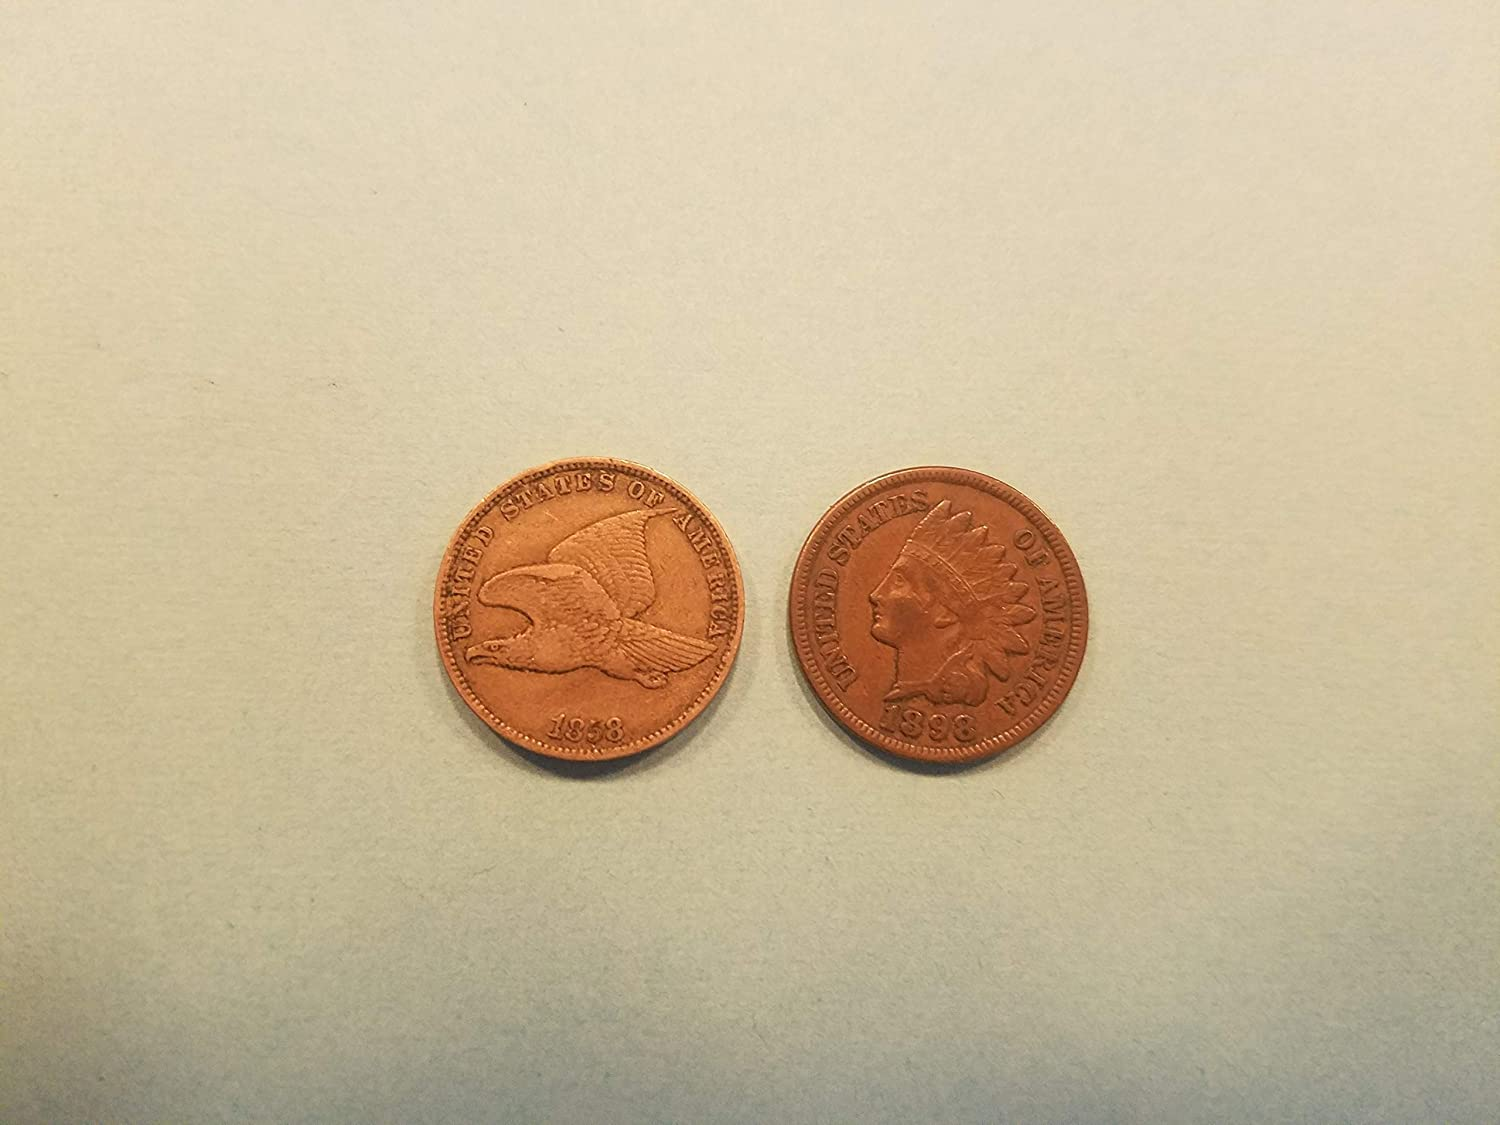 1900/'s LOT OF 10 Coins Mixed Indian Head Cent Pennies in Average Circ 1800/'S